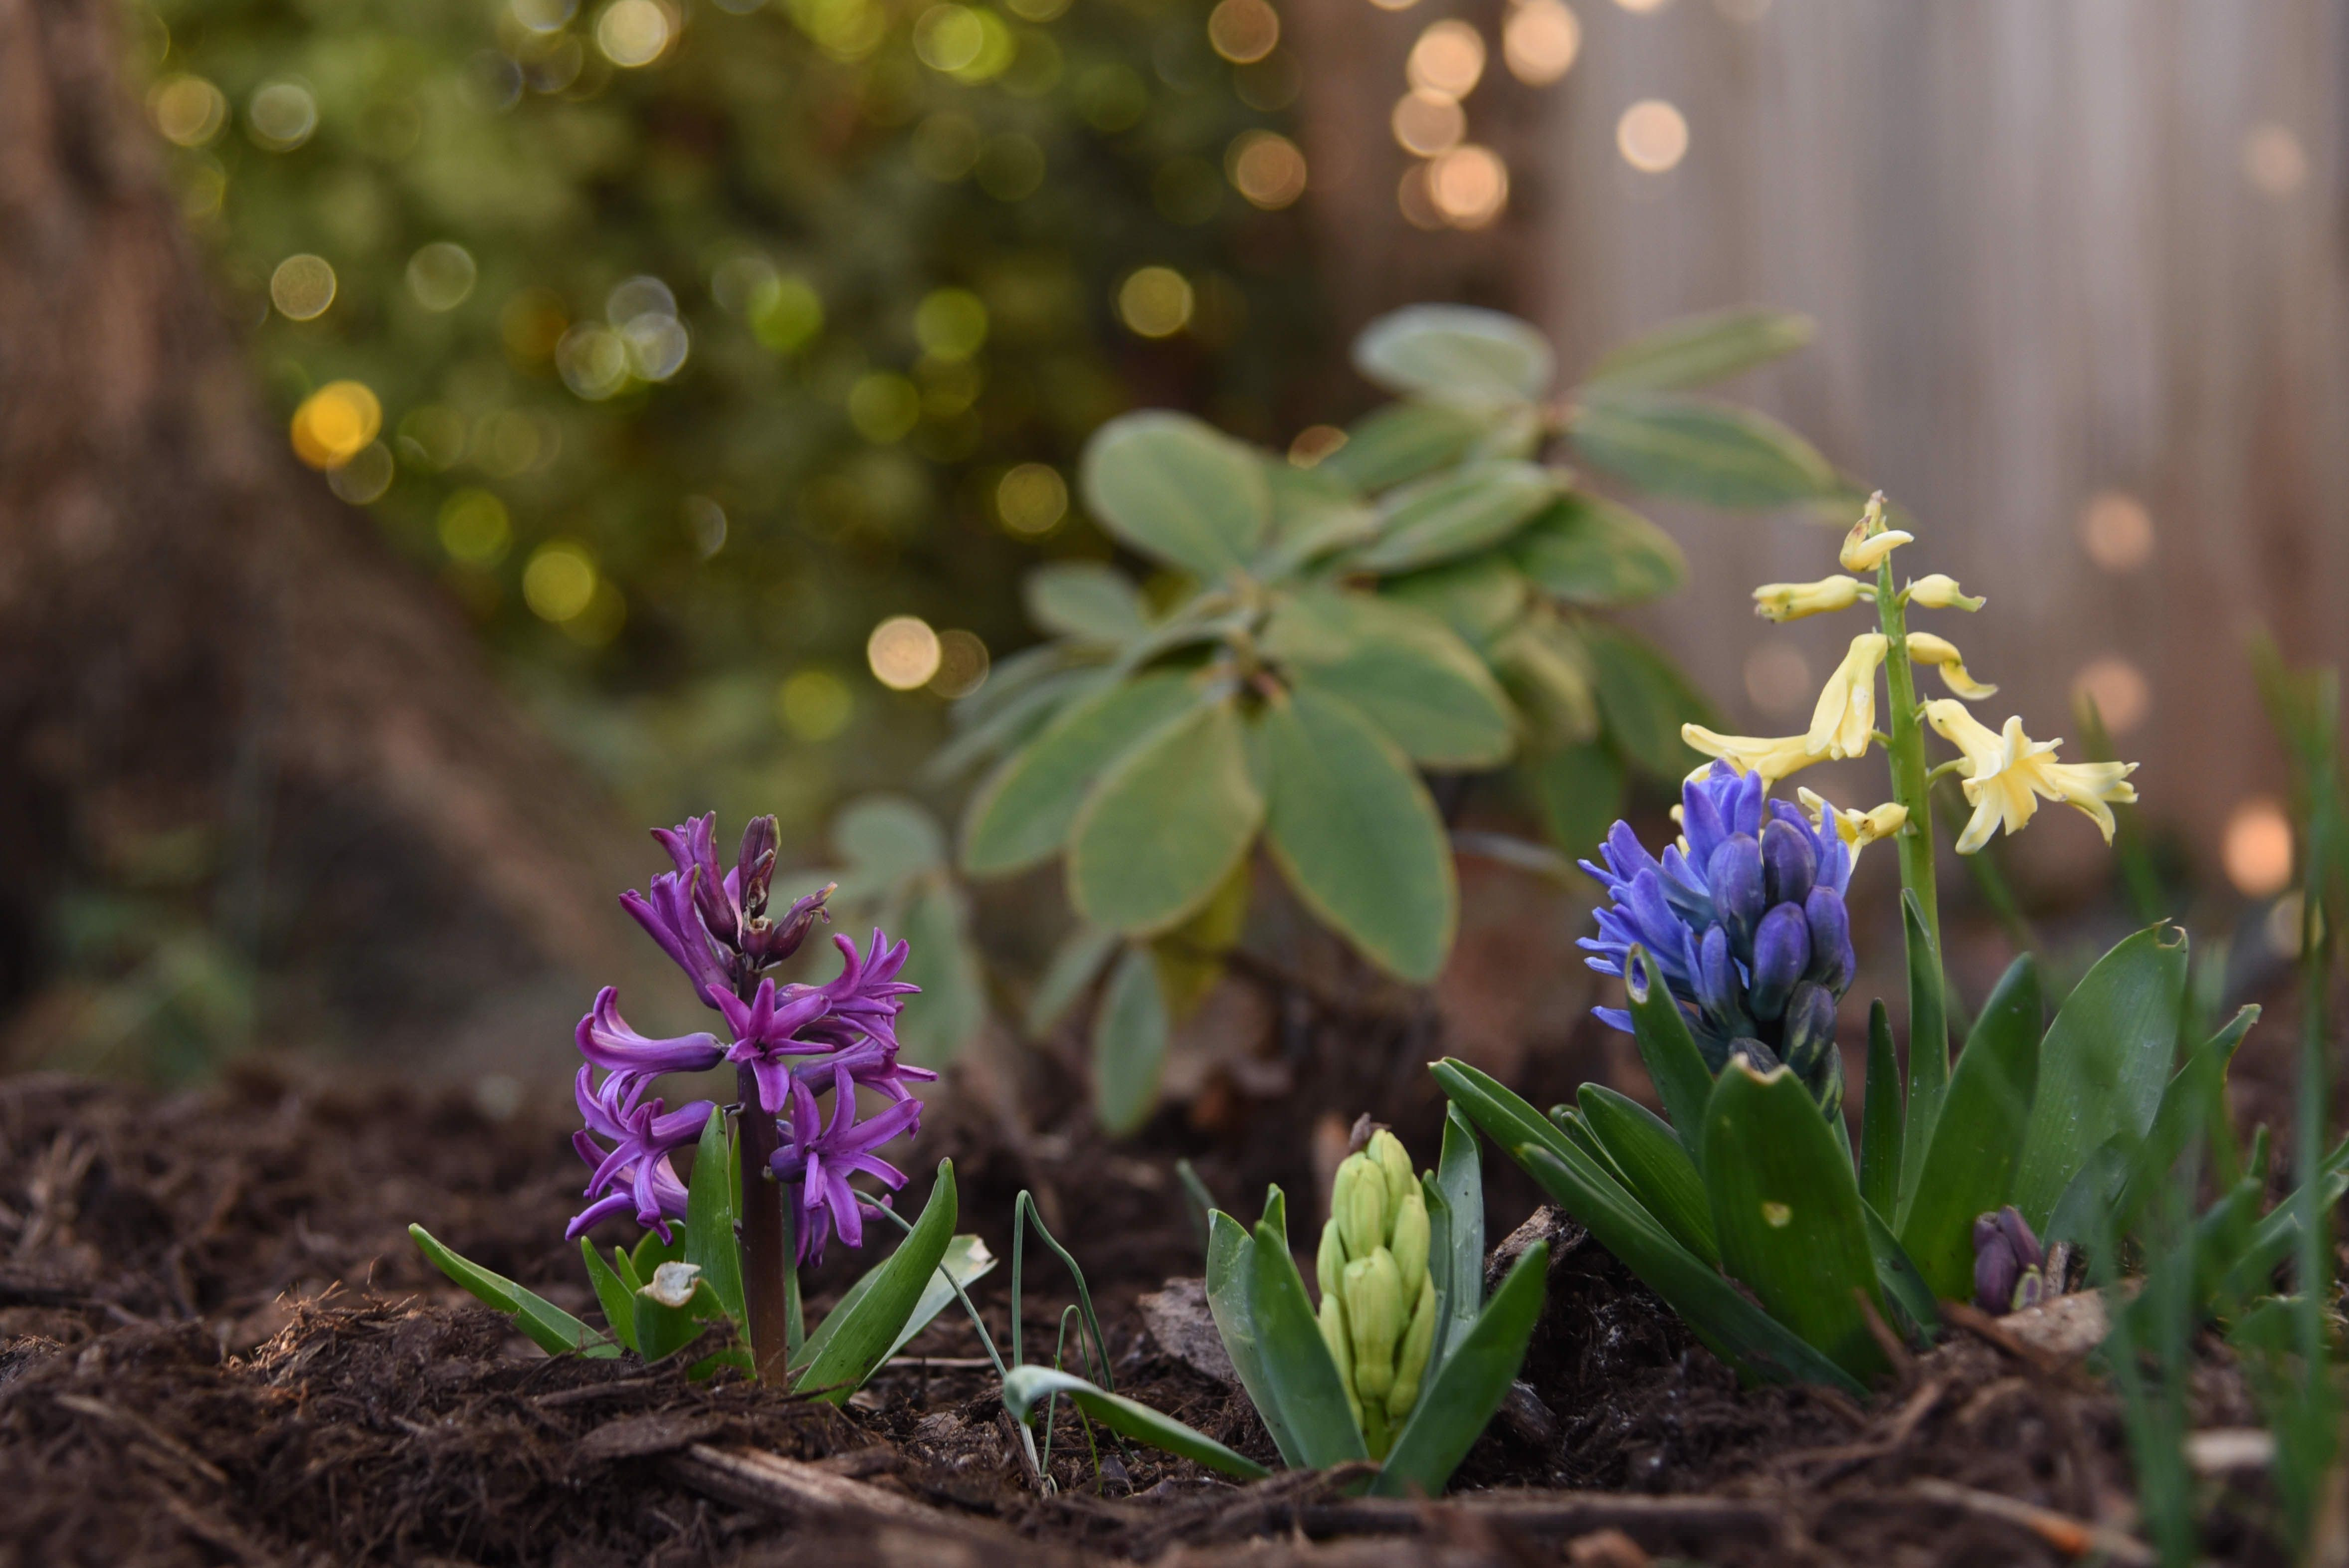 Despite the Cold Hyacinth Flowers